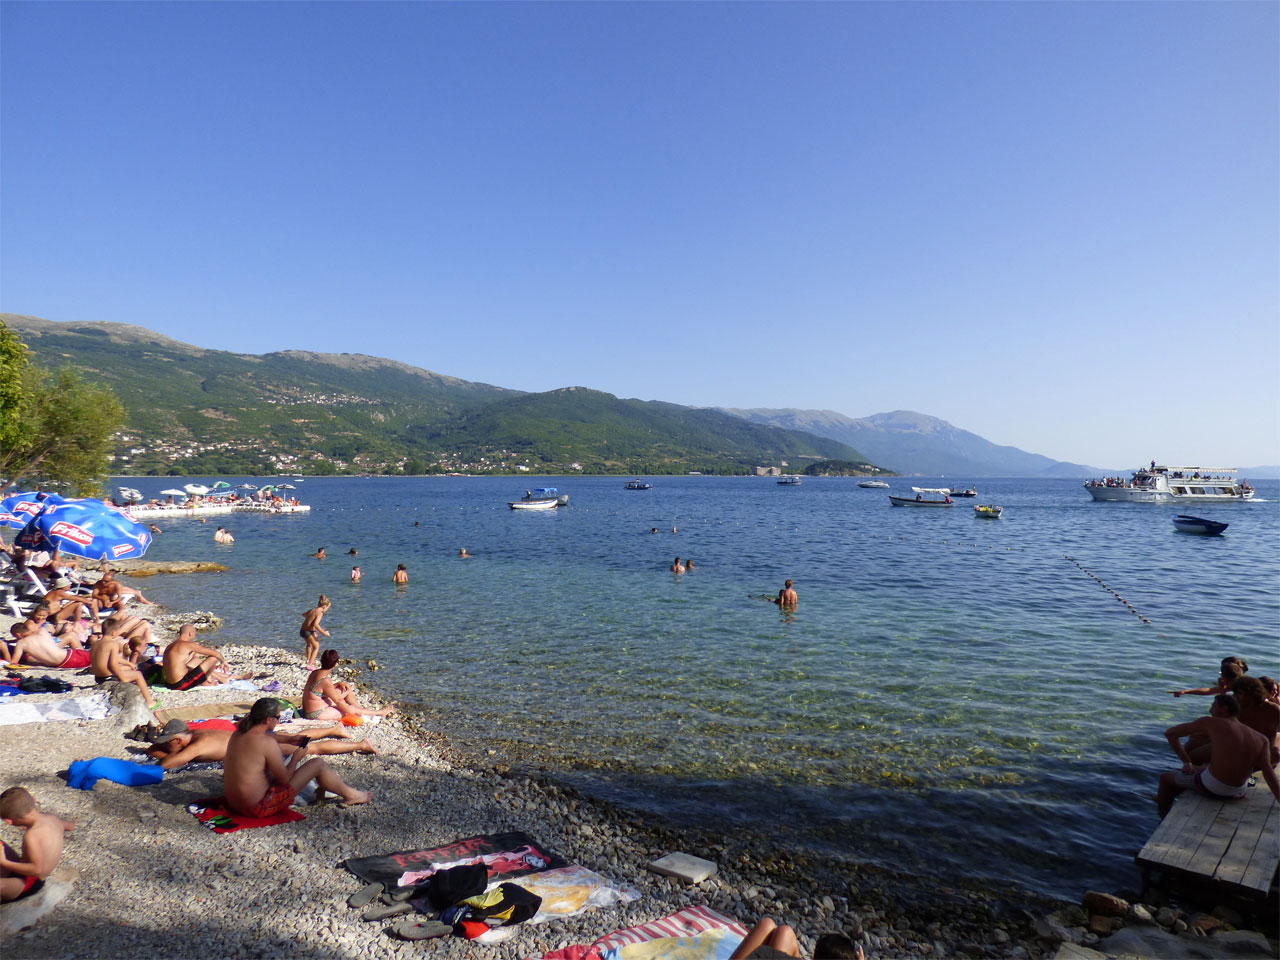 Beach on the shores of Lake Ohrid, Macedonia